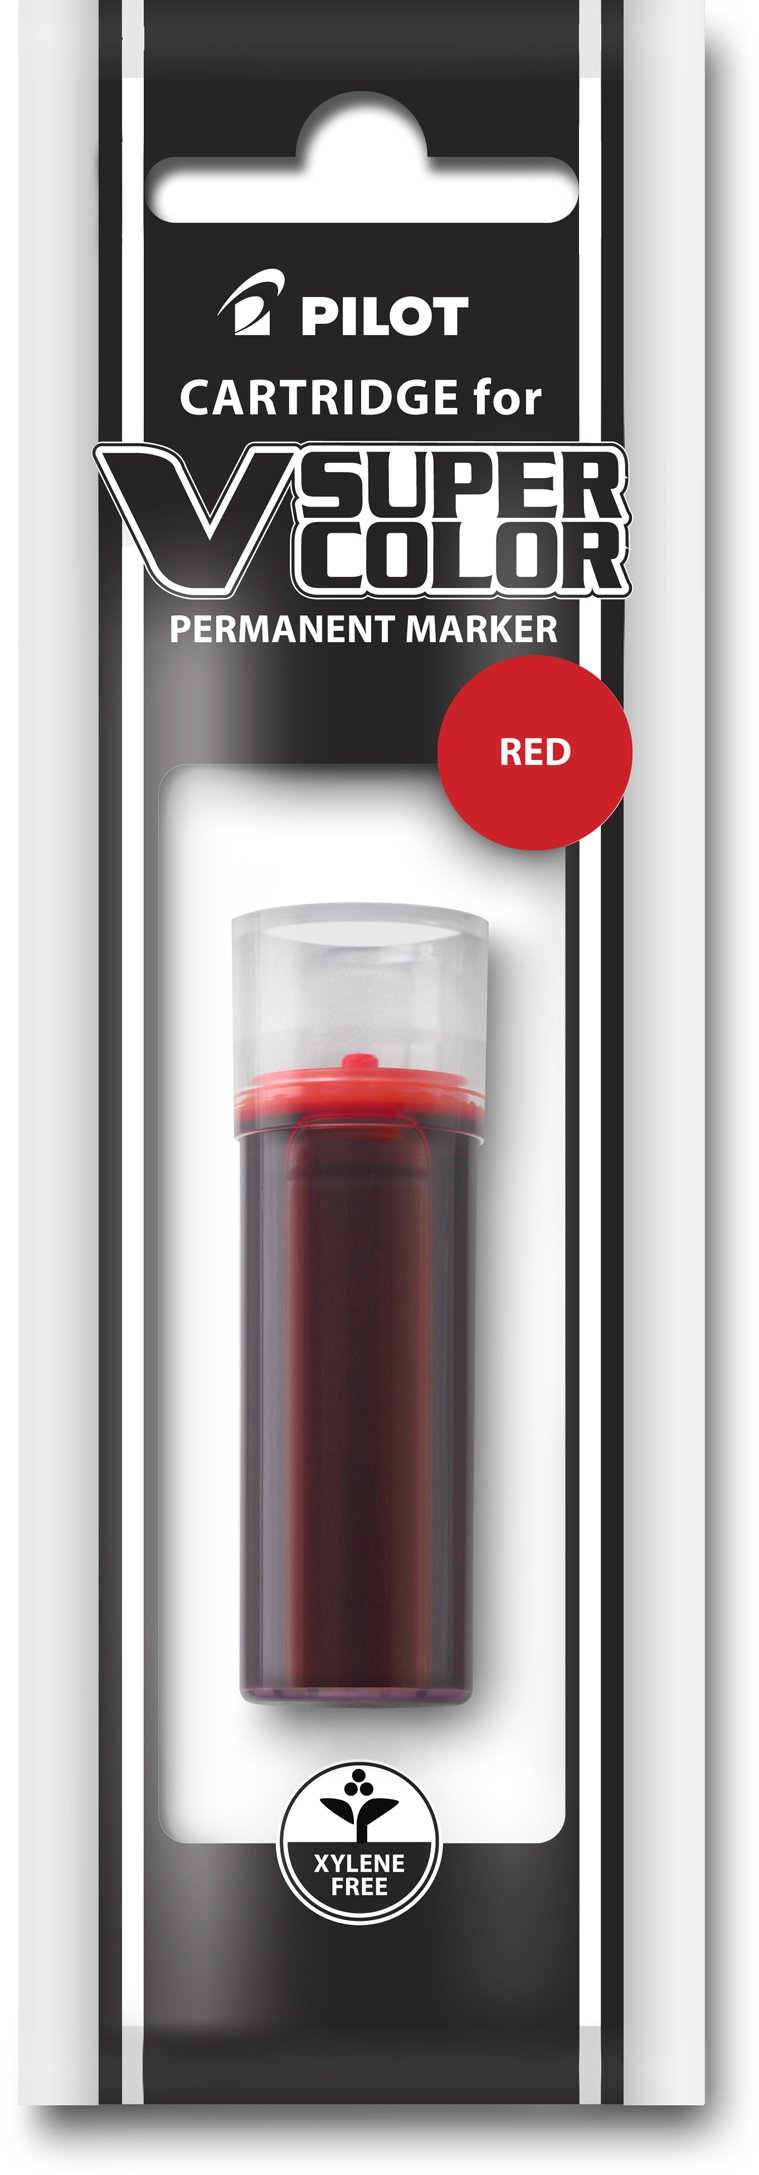 Pilot V Super Color Permanent Marker Ink Refill Cartridge, Xylene-Free, Red Ink (43910)